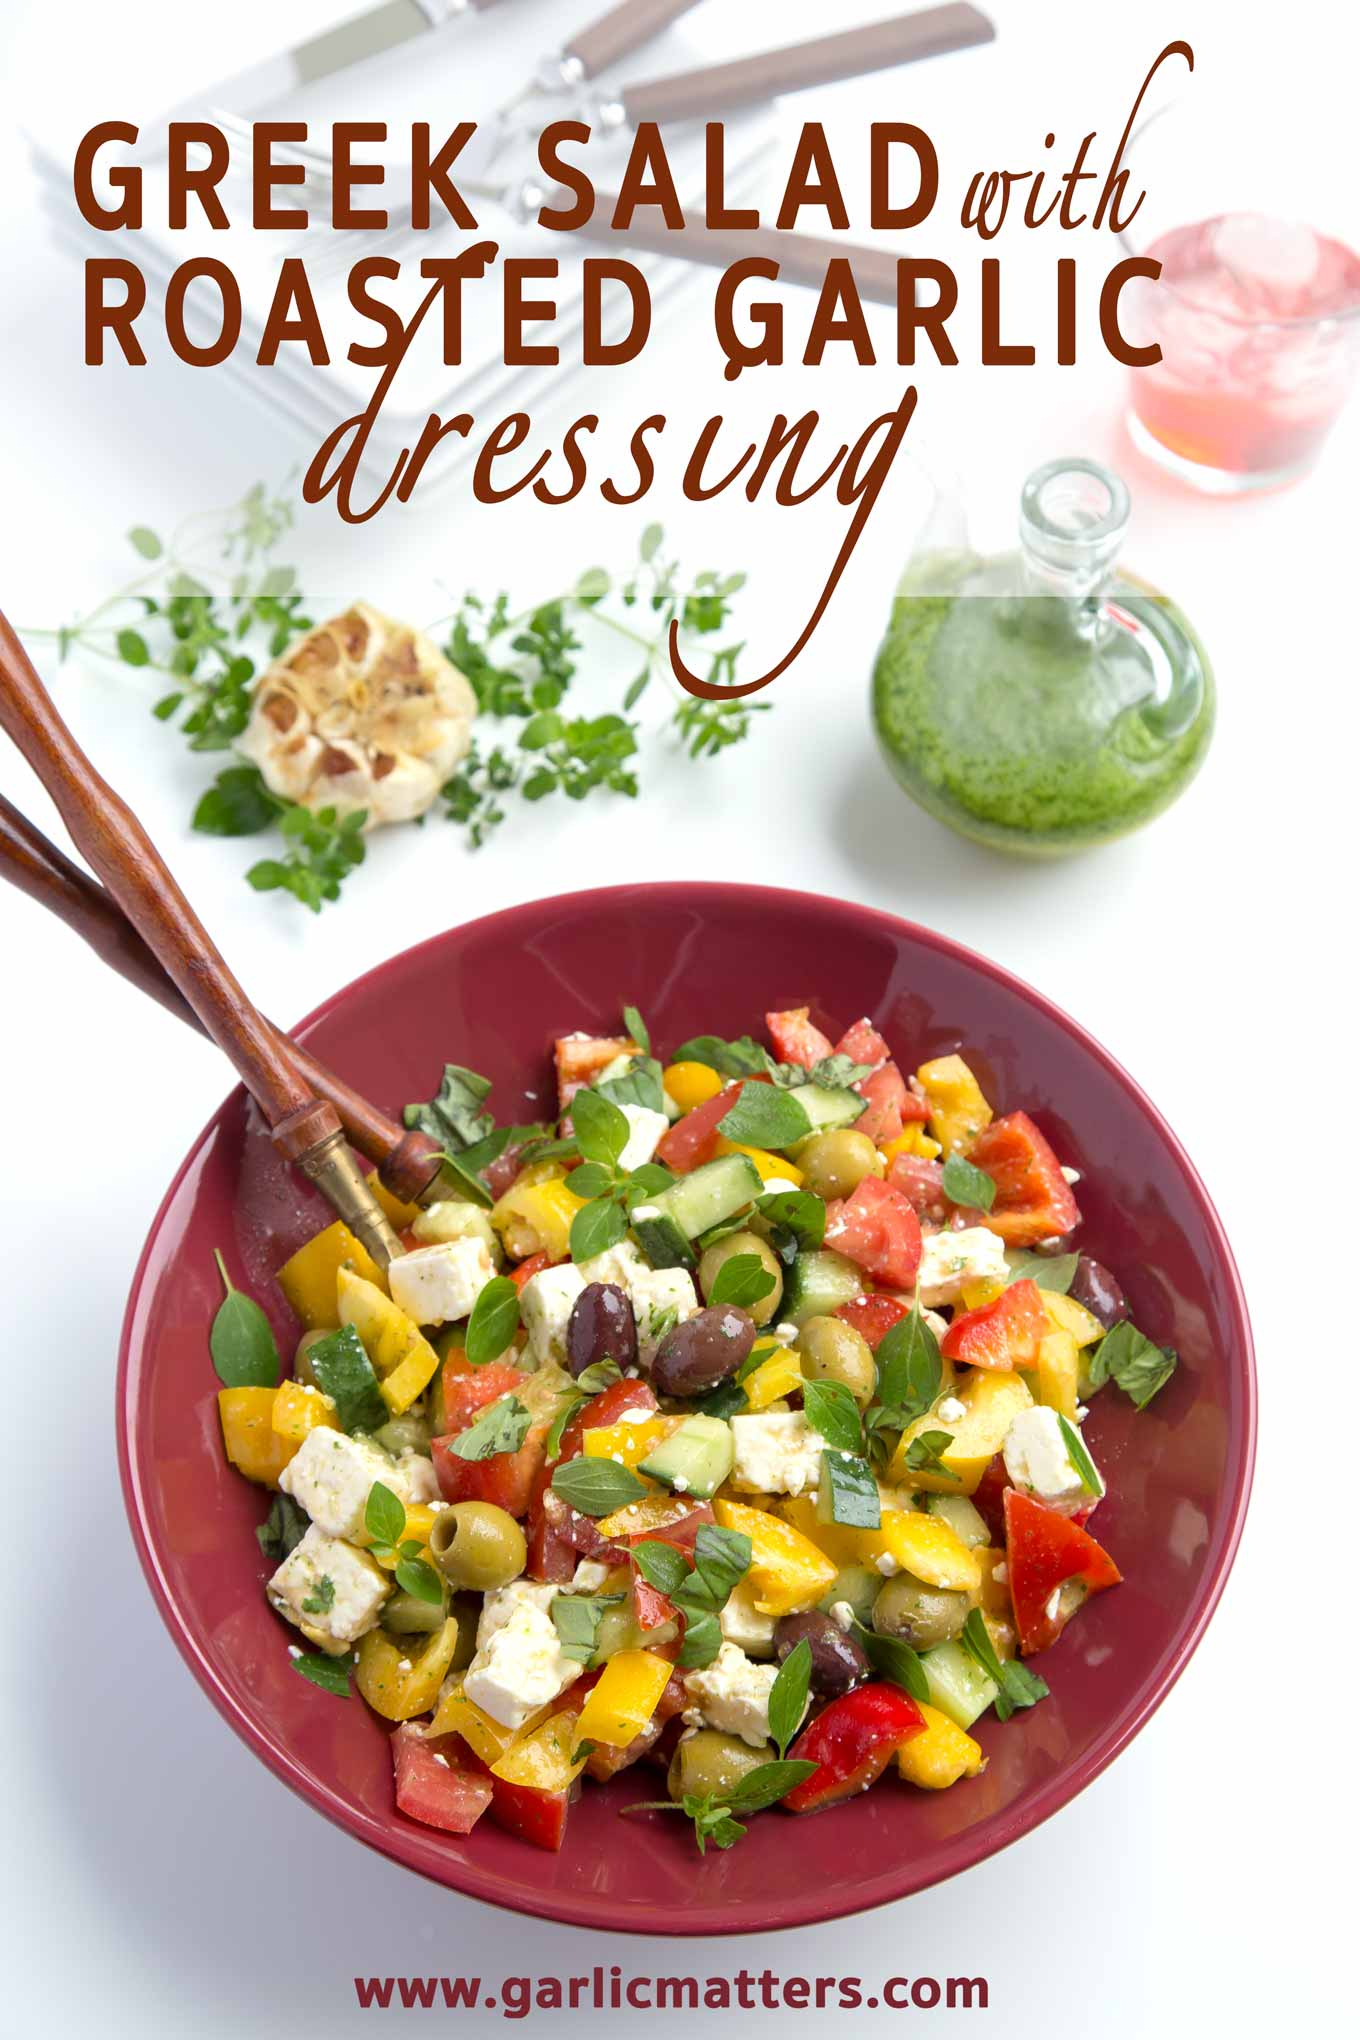 Adding this Roasted Garlic Dressing is an easy way to bring the best out of any raw vegetable salad. Vegan, full of flavour, serves 6.